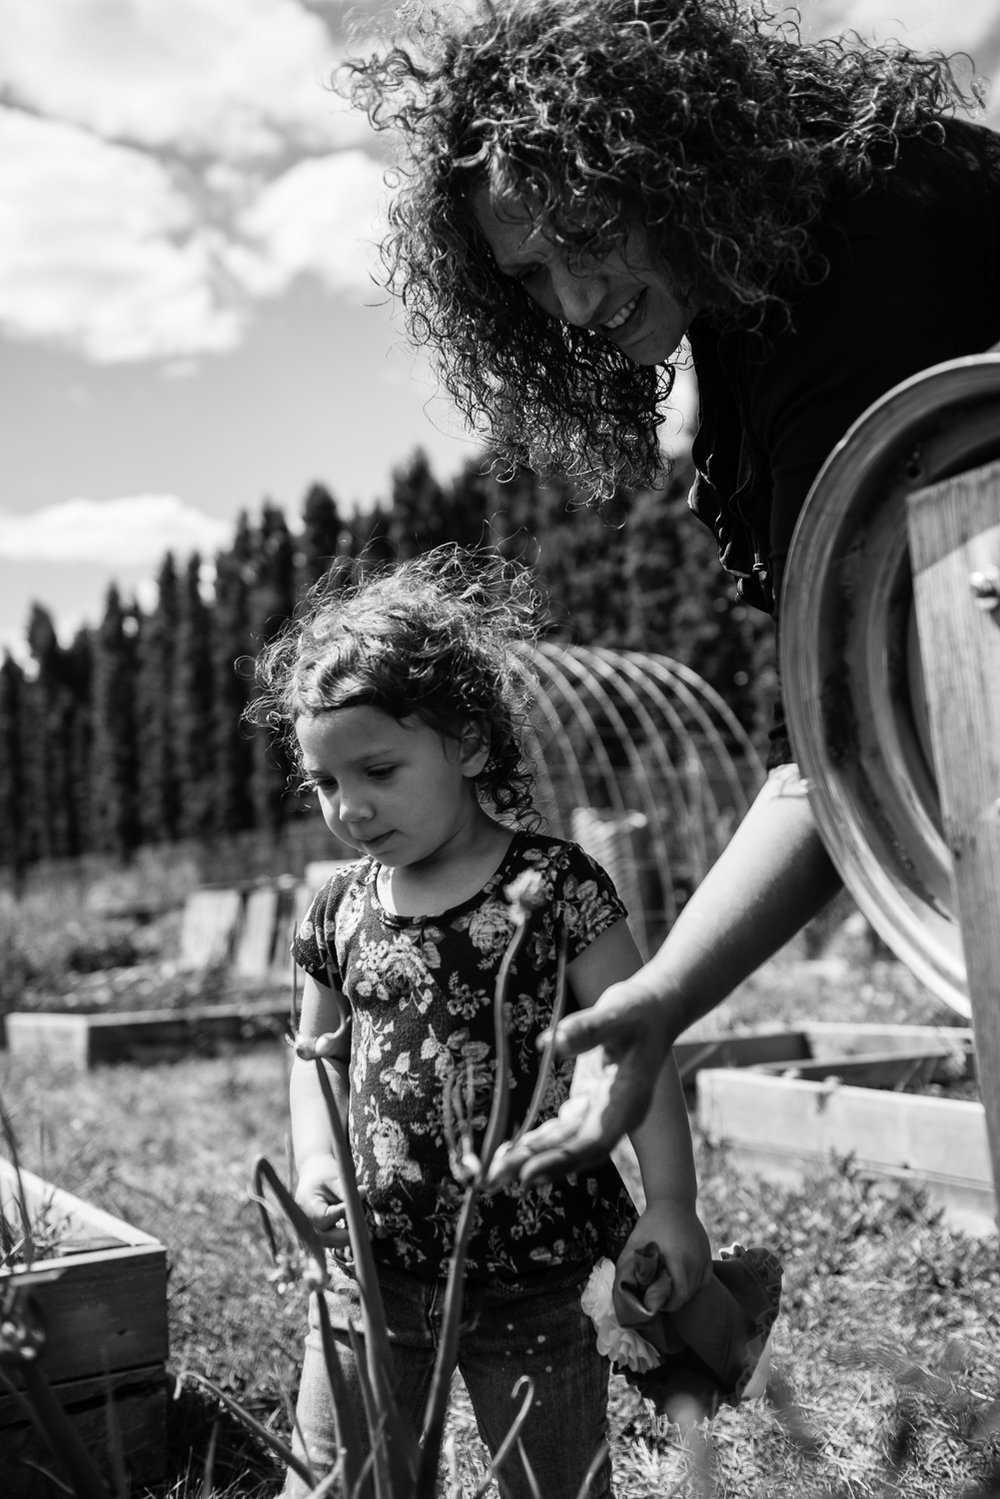 """Carmen and her granddaughter at the community garden where they grow vegetables.  Says Carmen """"  It's really great to see – I really feel like we've broken that third-generation cycle of being involved within the child welfare system. Having that complex trauma. My children who have children are successfully parenting. They work, they go to school. They are upstanding citizens. So somewhere along the line they were gifted and I'm very grateful for that."""""""